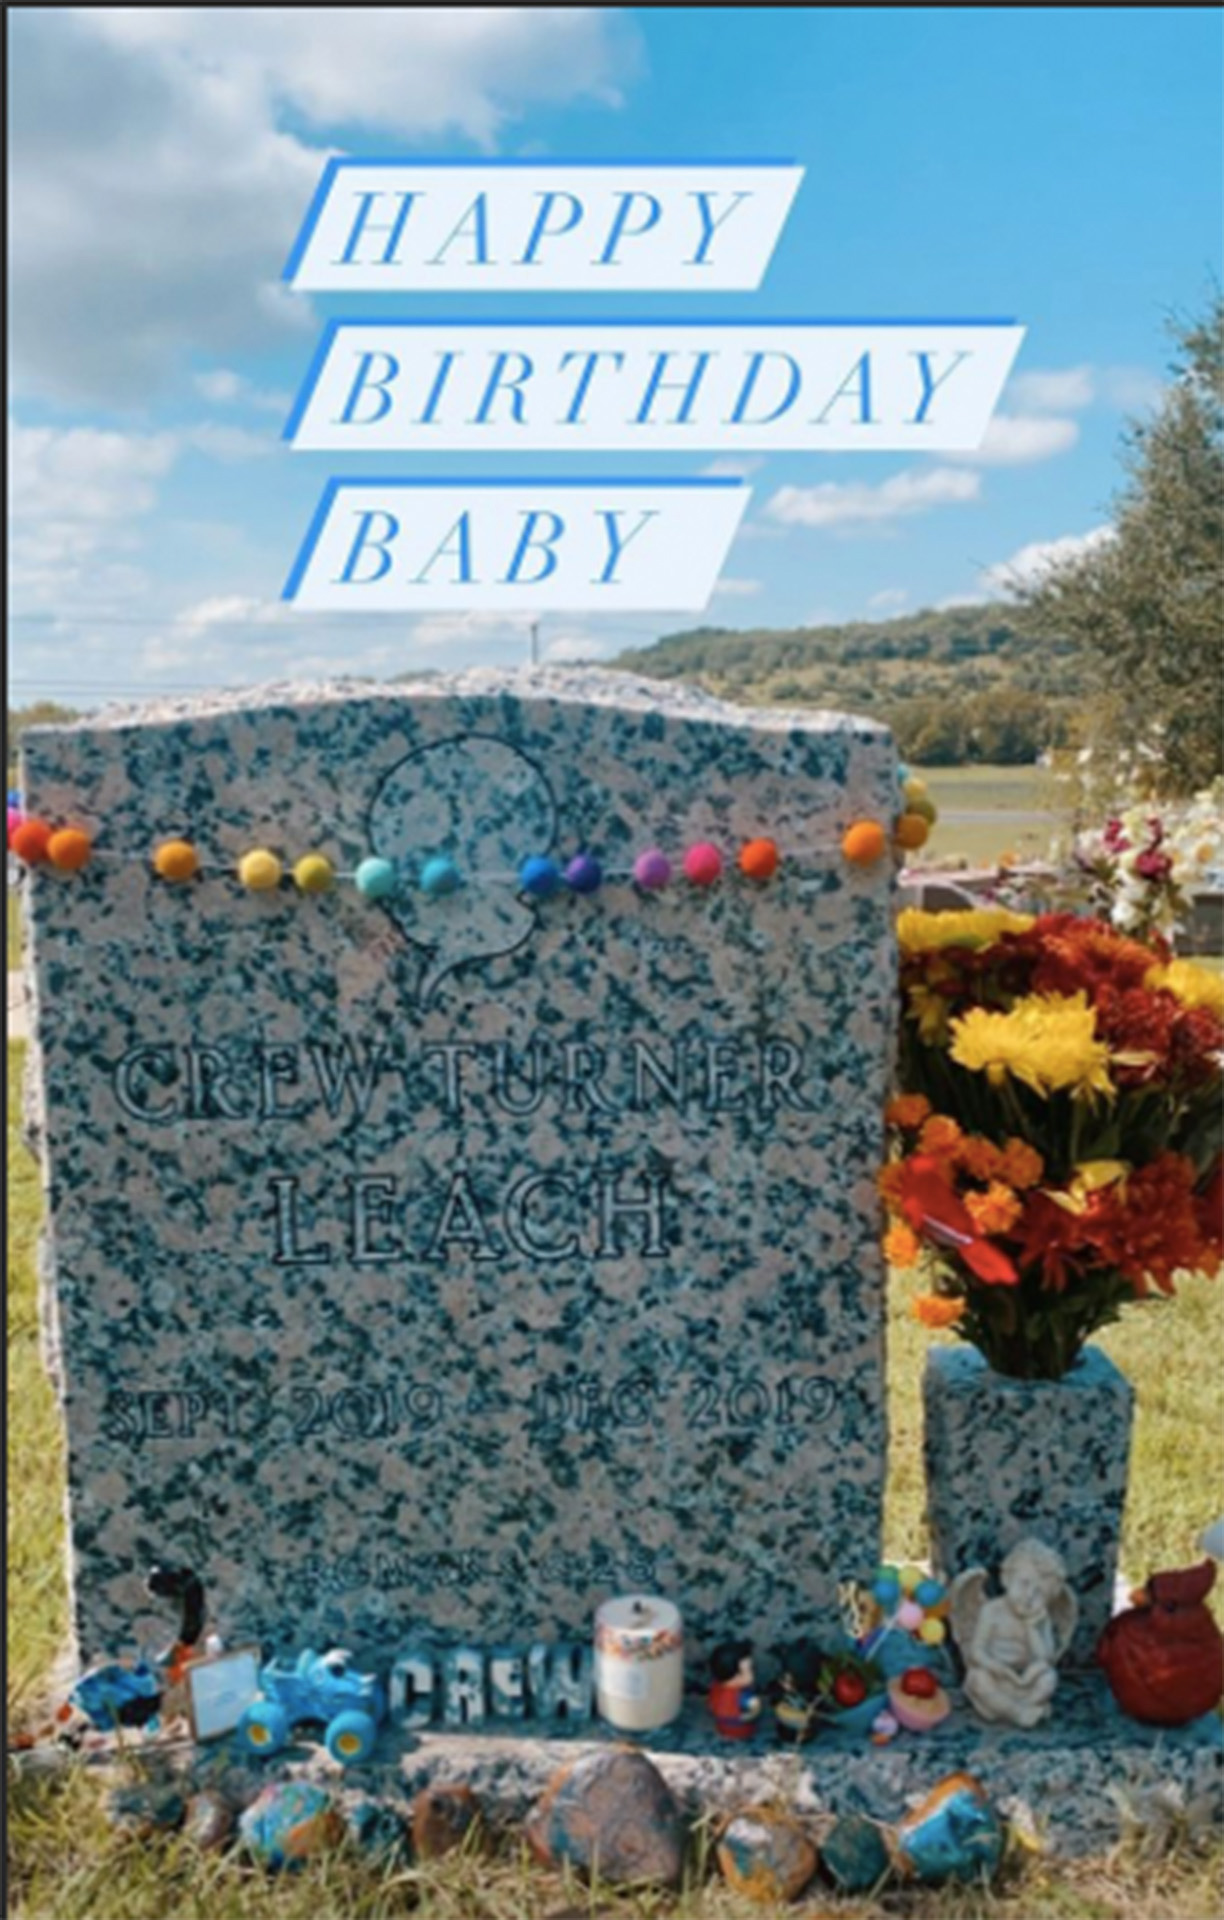 Brittani Boren Leach Visit Late Son Crew's Gave On What Would Have Been His 1st Birthday